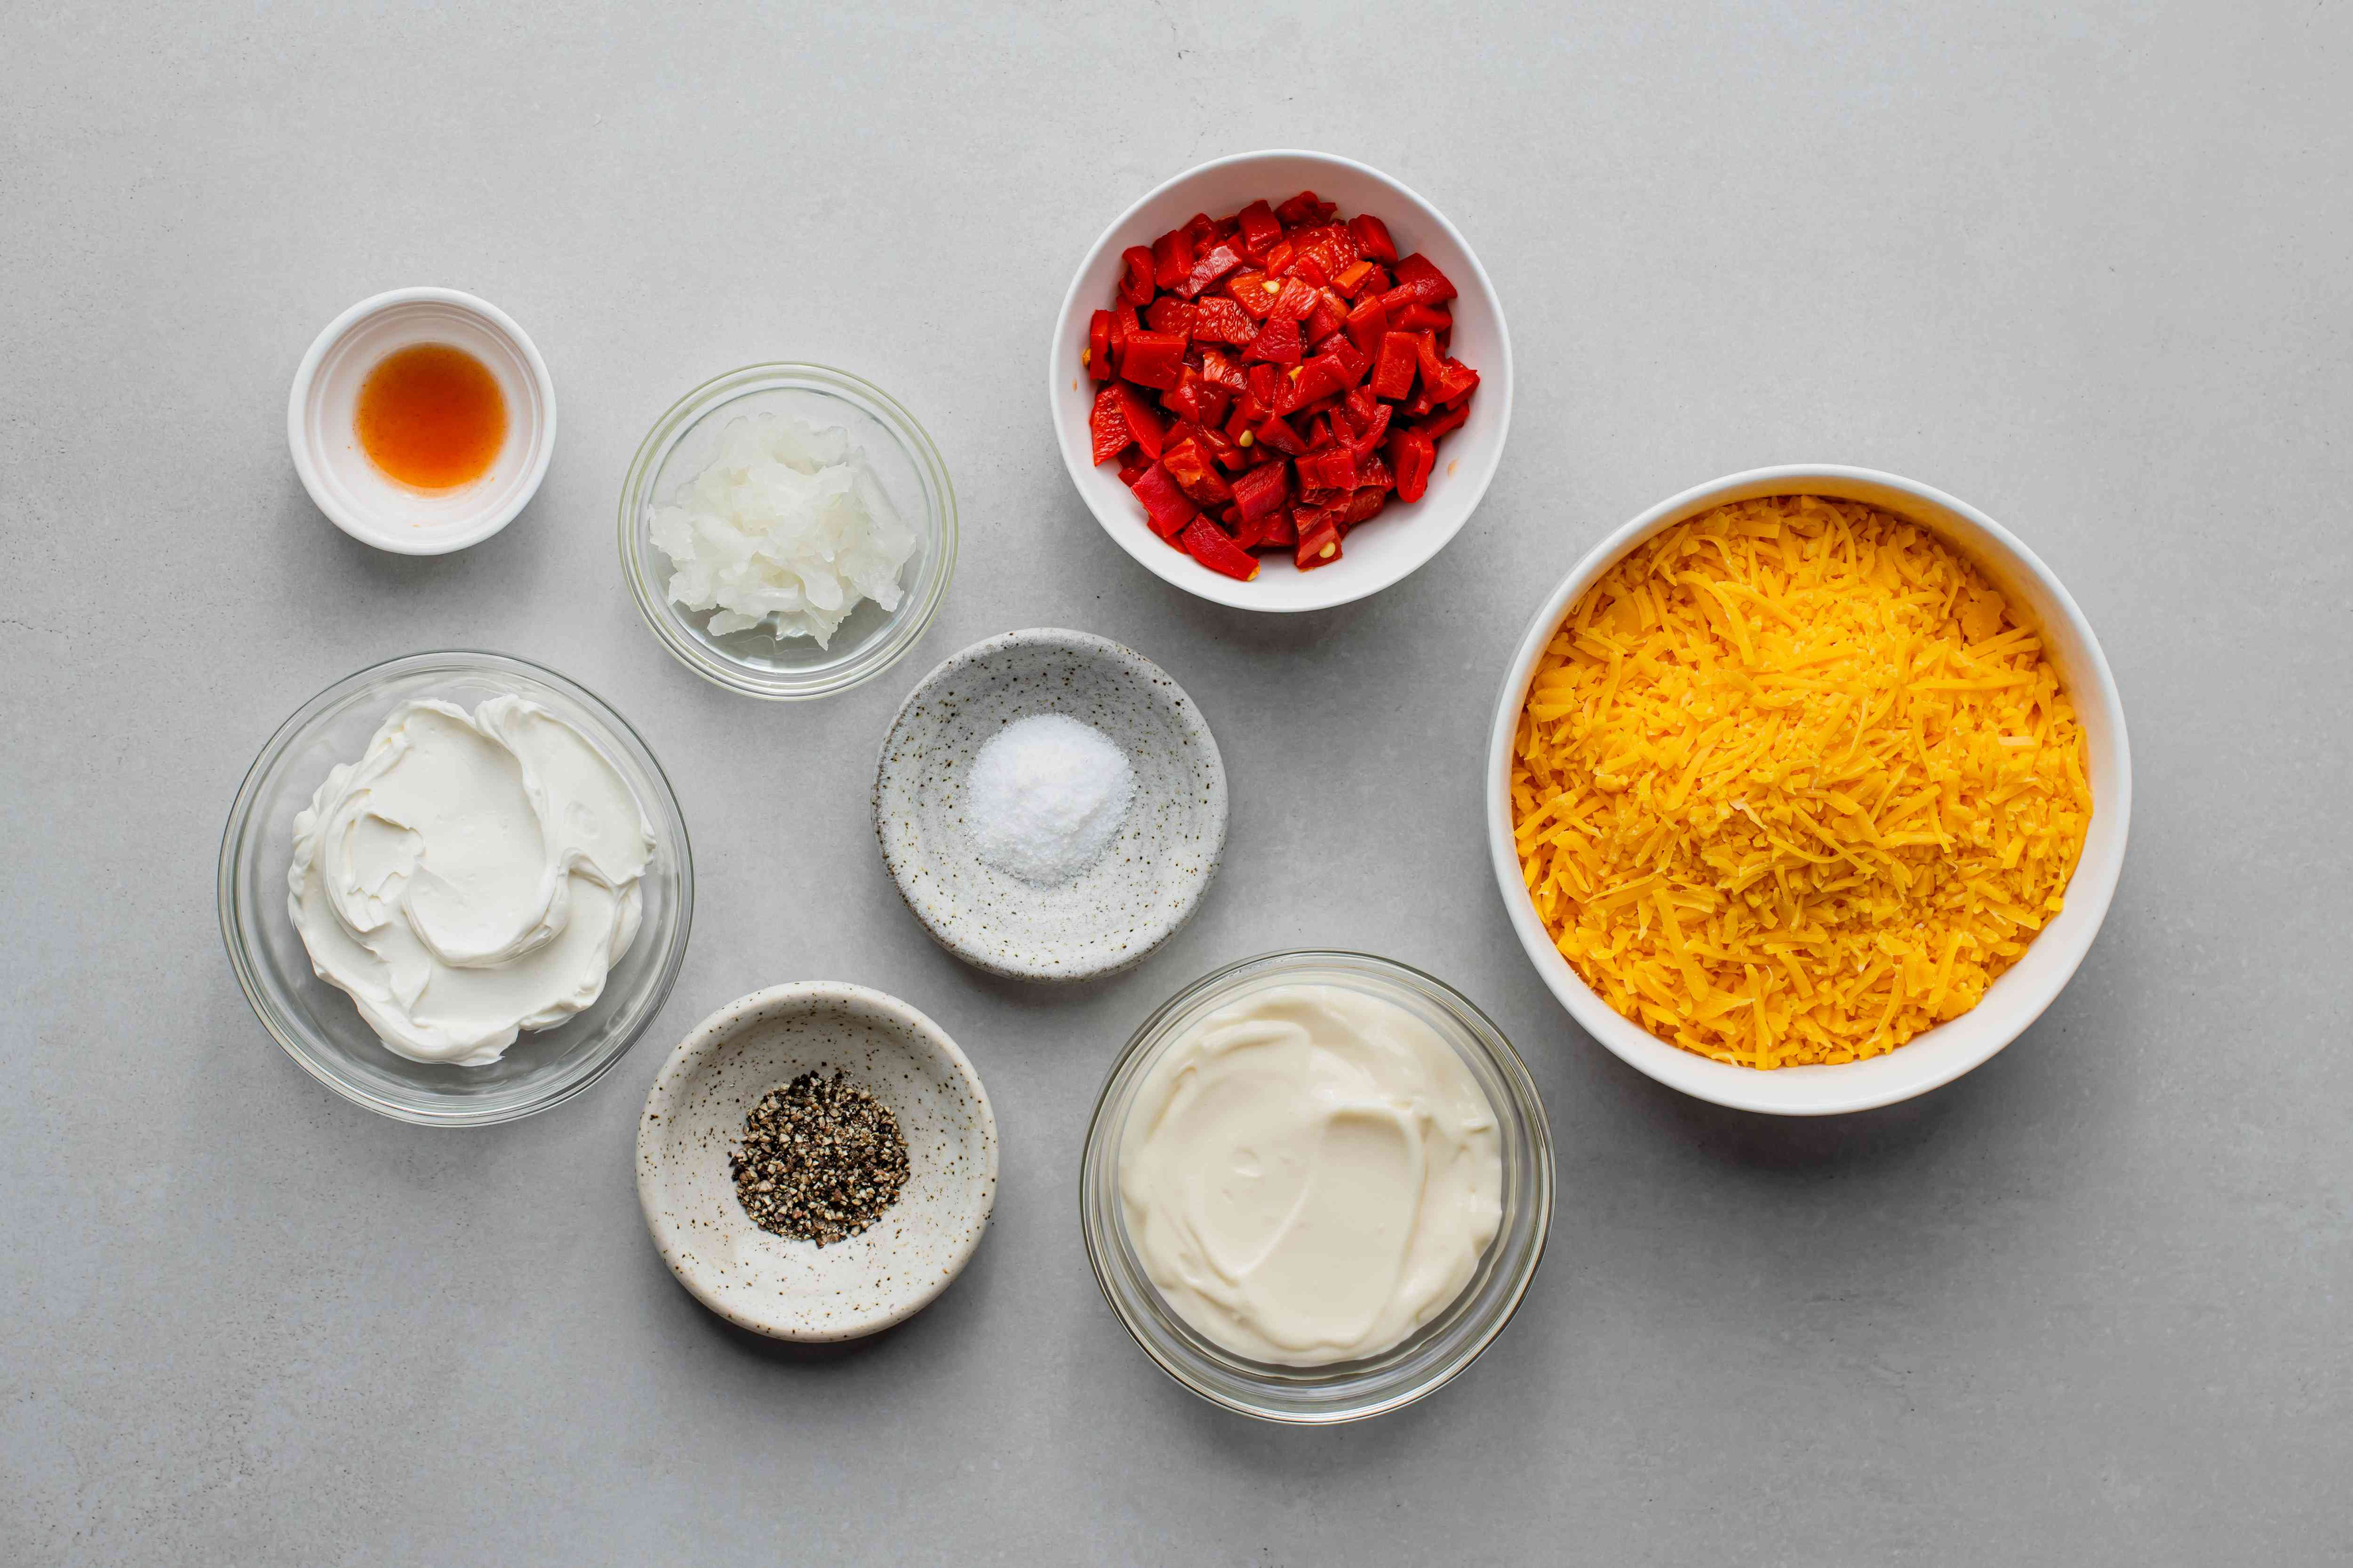 Southern Pimento Cheese Spread ingredients